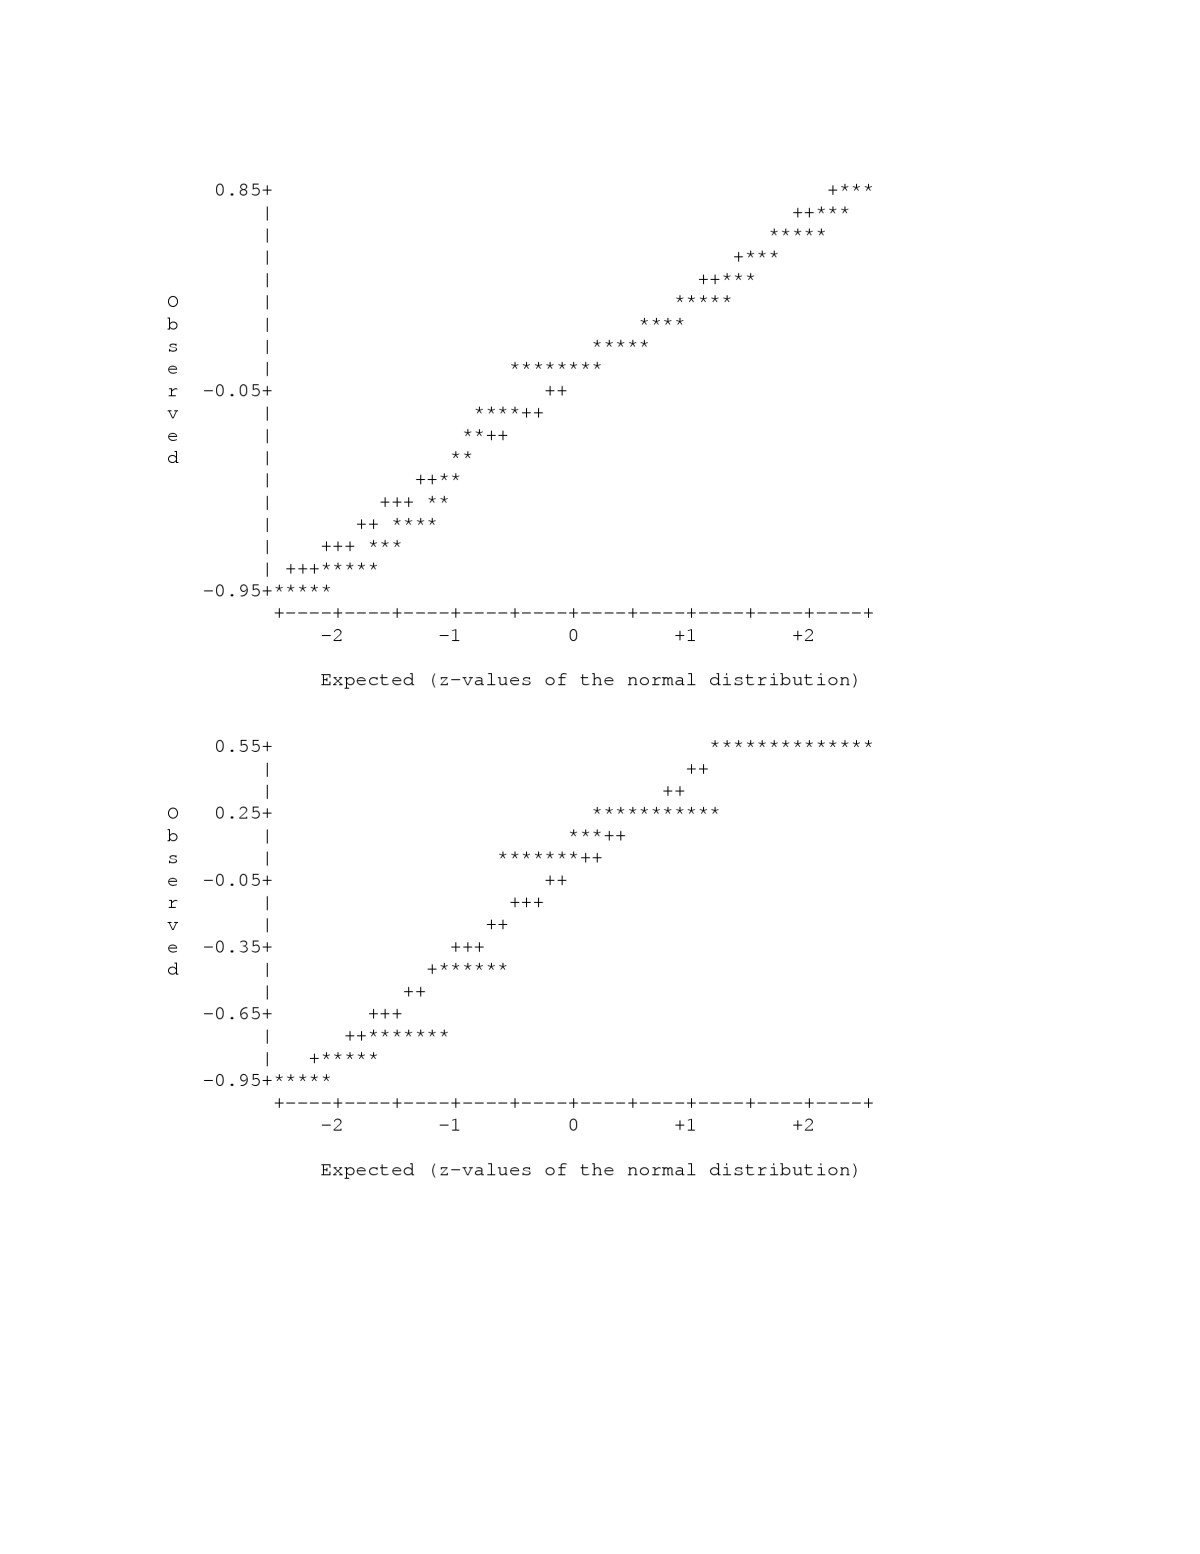 https://static-content.springer.com/image/art%3A10.1186%2F1471-2288-6-13/MediaObjects/12874_2005_Article_138_Fig3_HTML.jpg